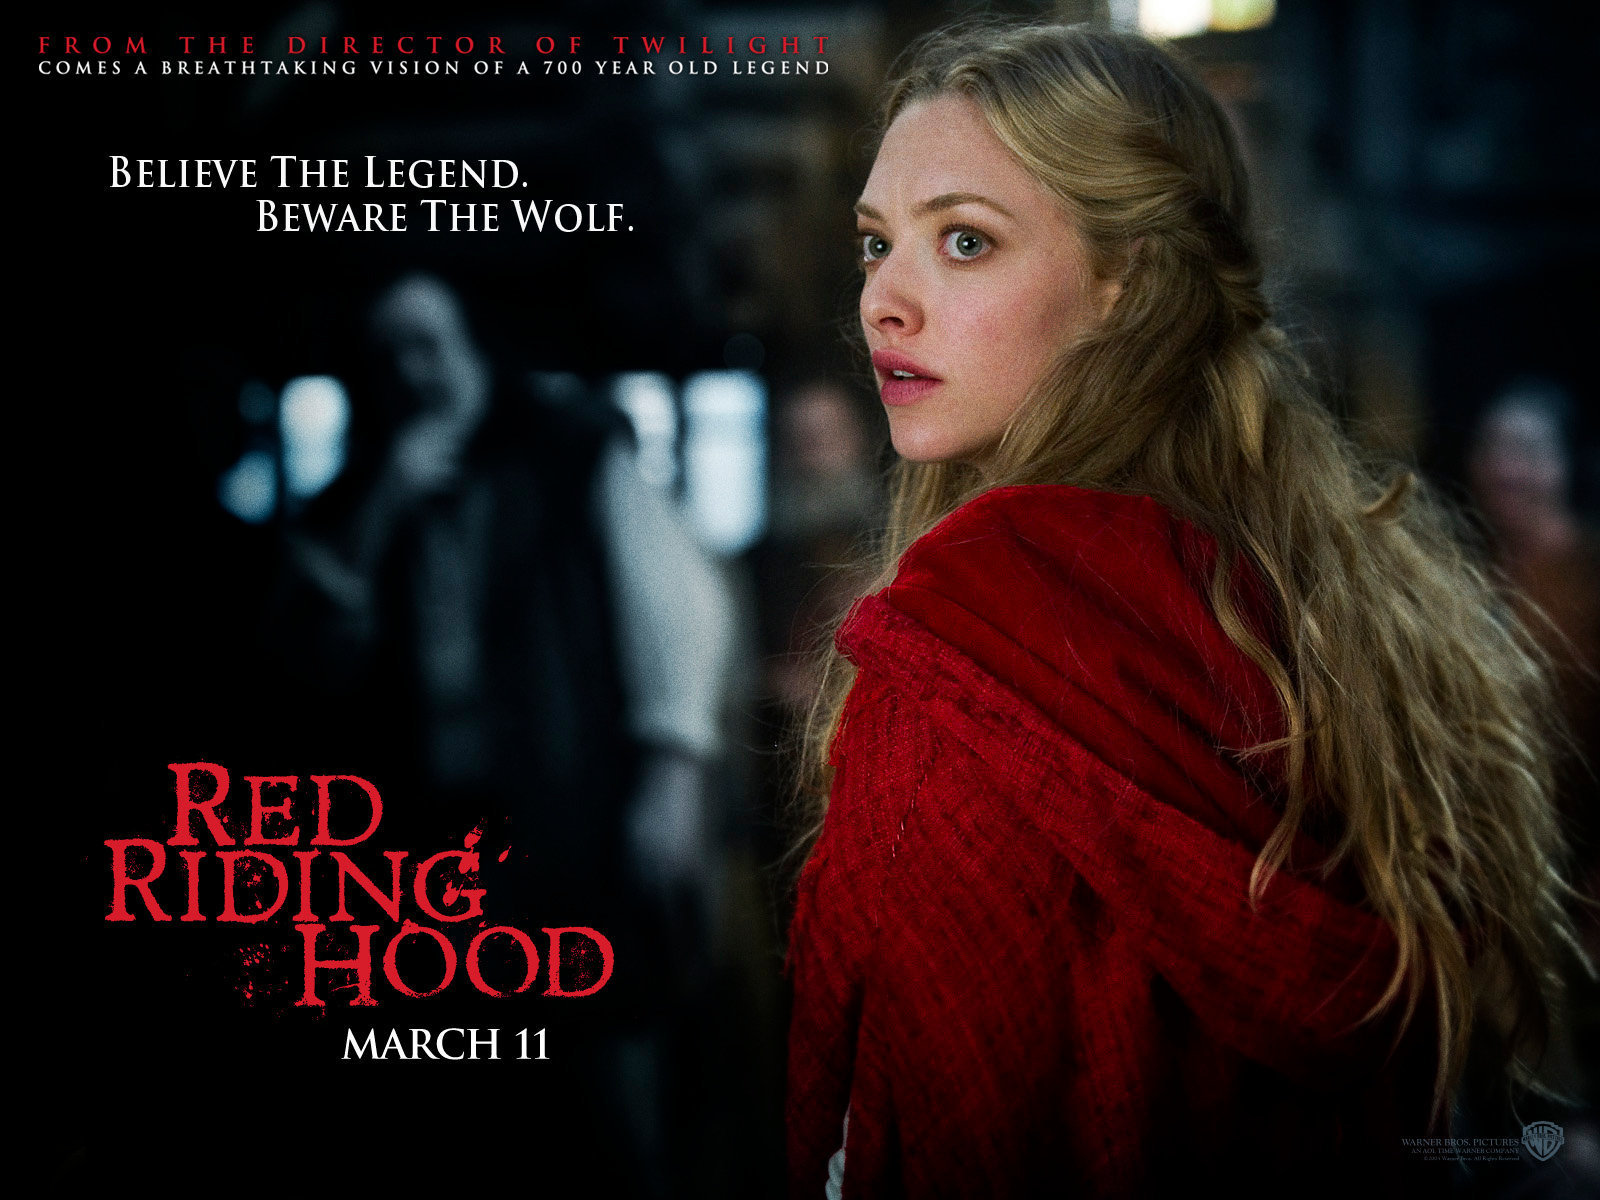 http://2.bp.blogspot.com/-Ppq8MEDCS8A/TeoubwCYgcI/AAAAAAAAAG4/8_v9EYoIENI/s1600/Red-Riding-Hood-2011-upcoming-movies-20026260-1600-1200.jpg